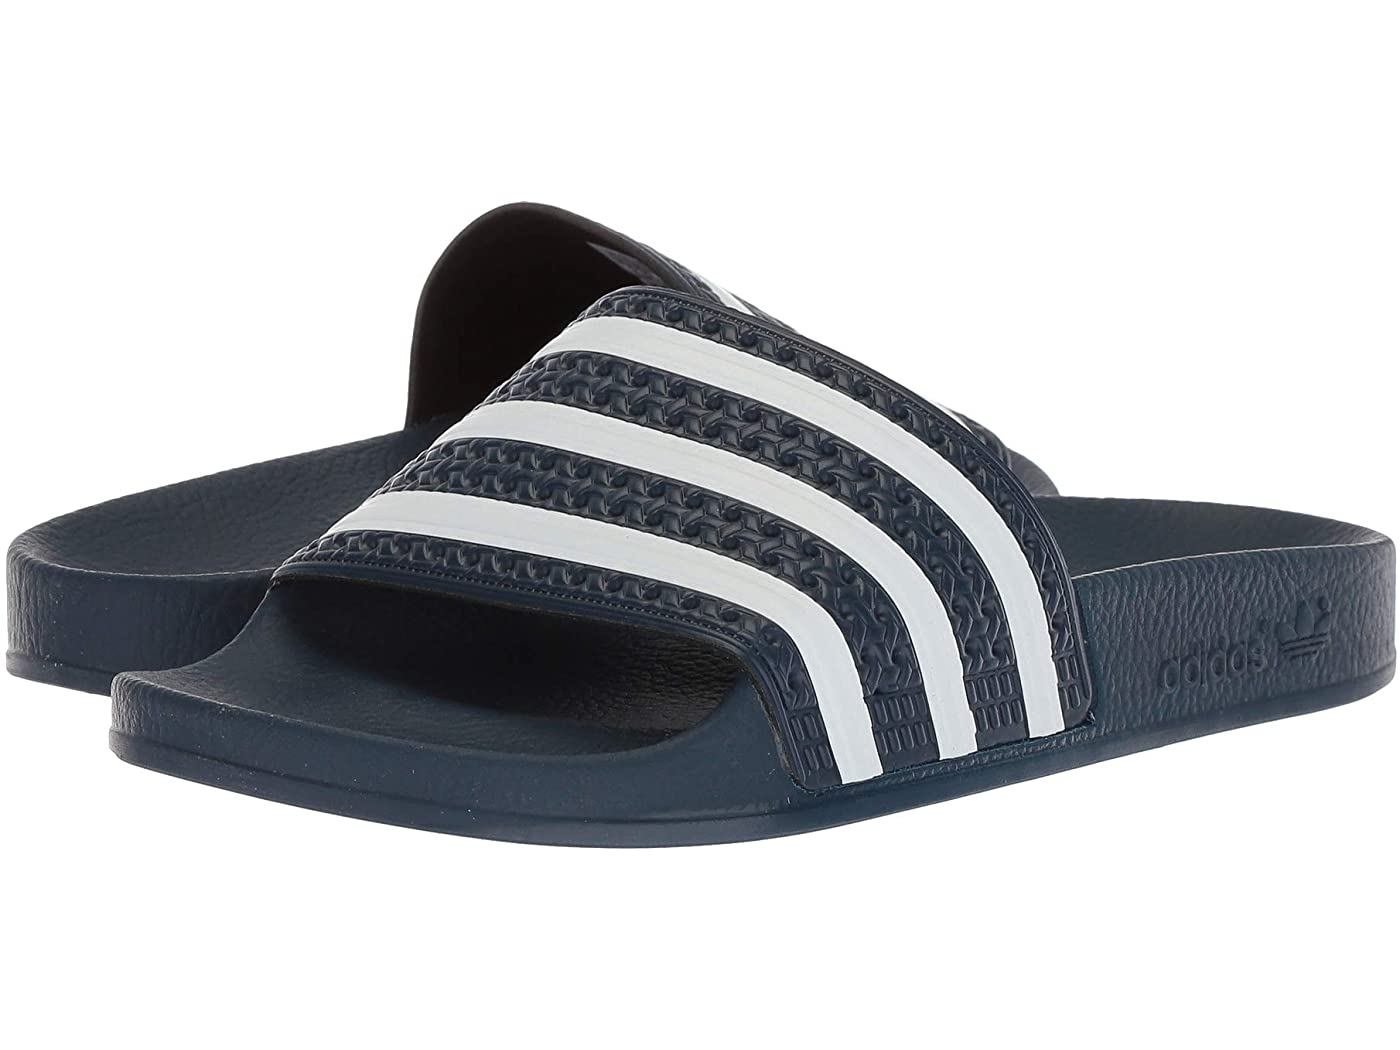 Adilette by Adidas, available on zappos.com for $44.95 Kendall Jenner Shoes Exact Product